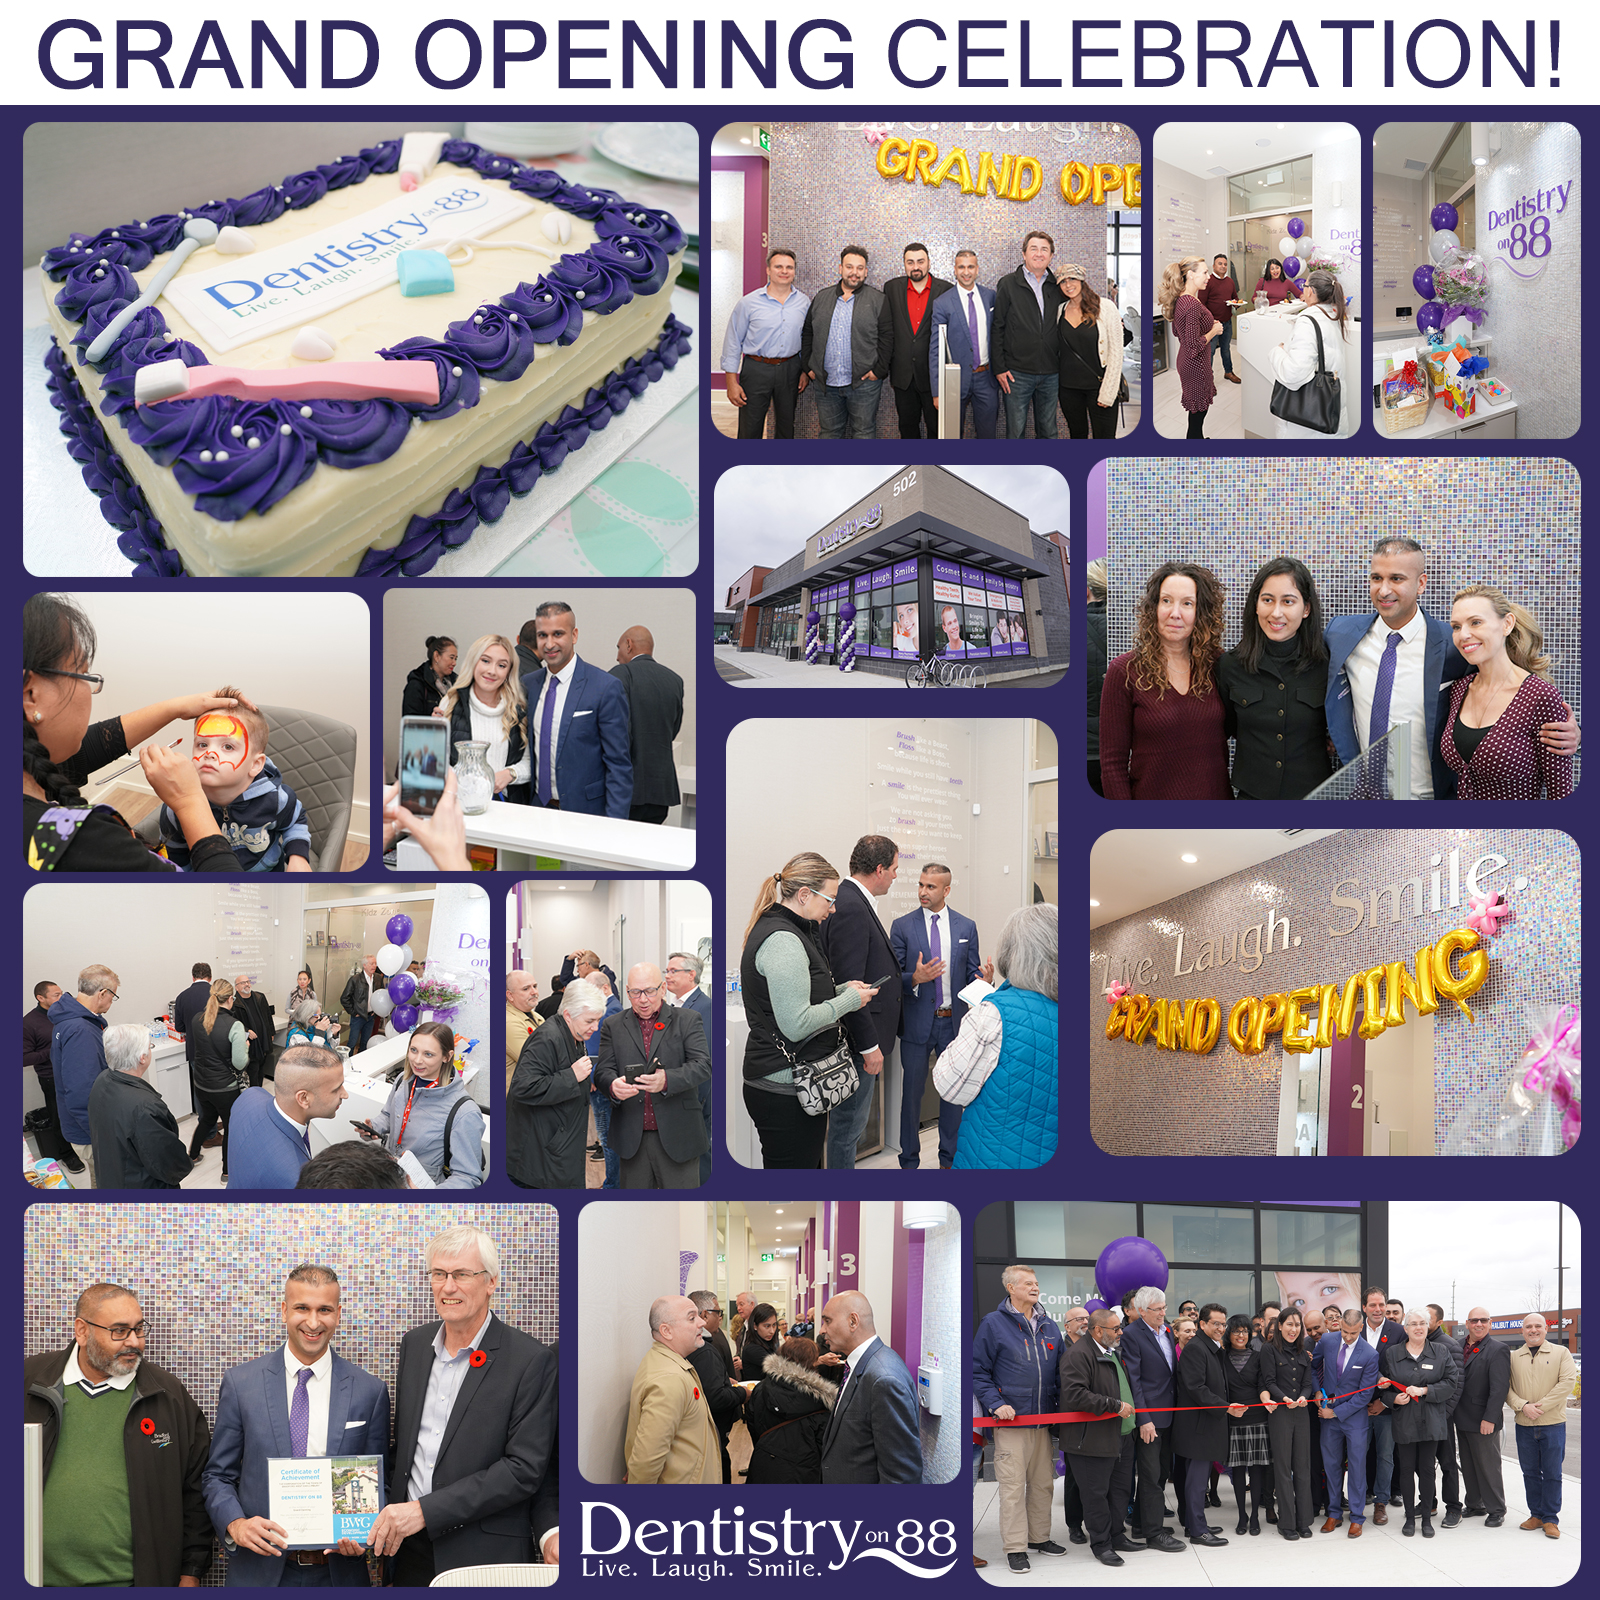 dentistry on 88 grand opening in bradford